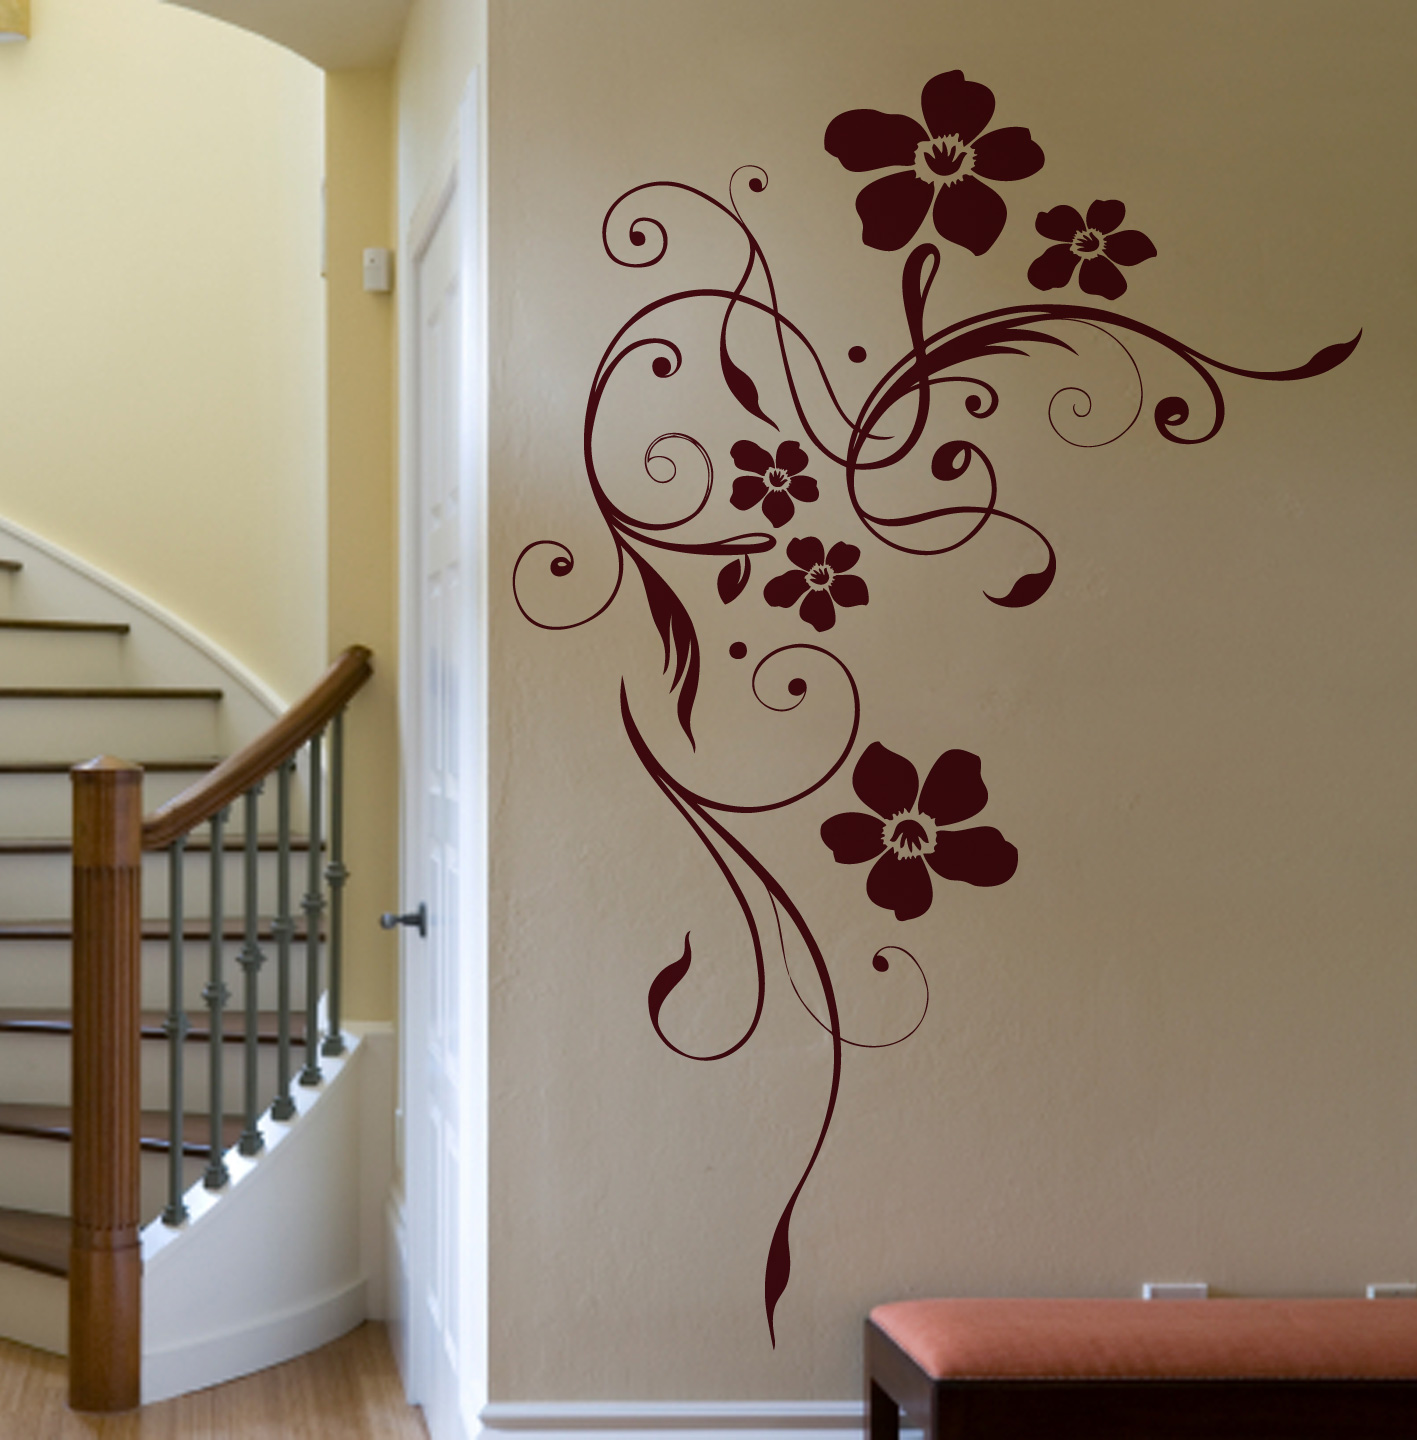 Led Ambientebeleuchtung Wohnzimmer : led ambientebeleuchtung wohnzimmer:wandtattoo wohnzimmer ornamente ...